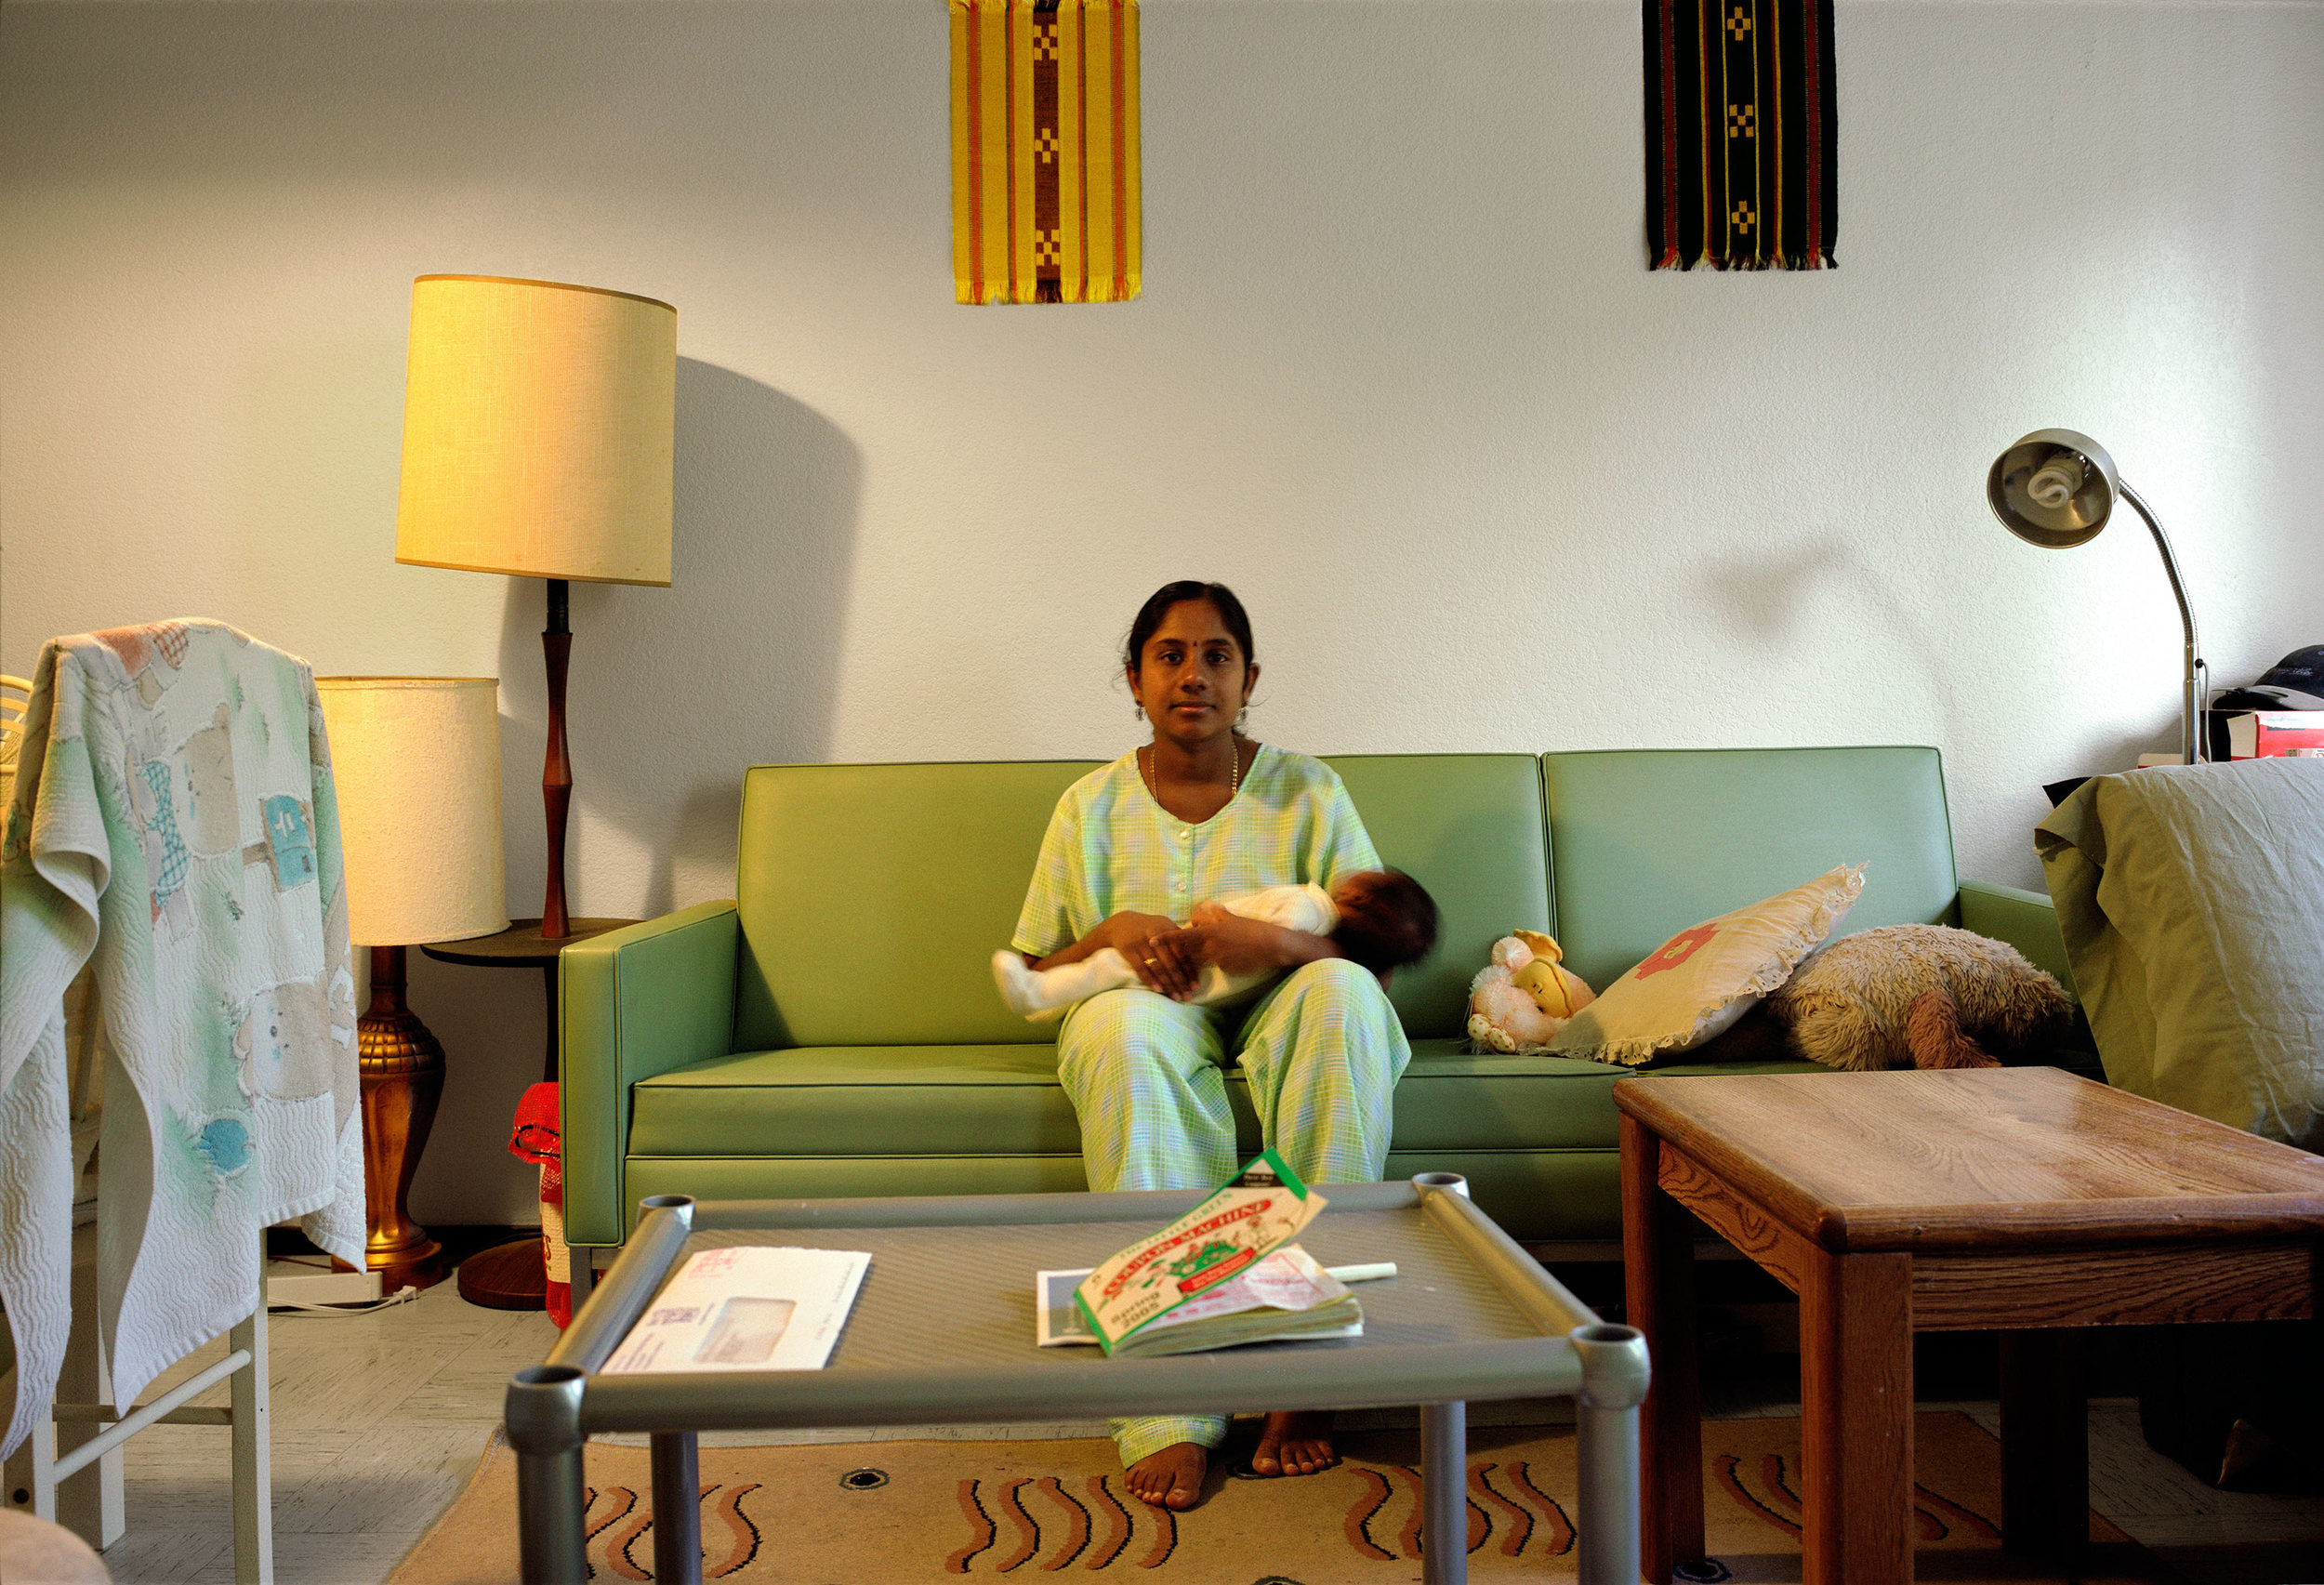 indian-woman-with-child.jpg